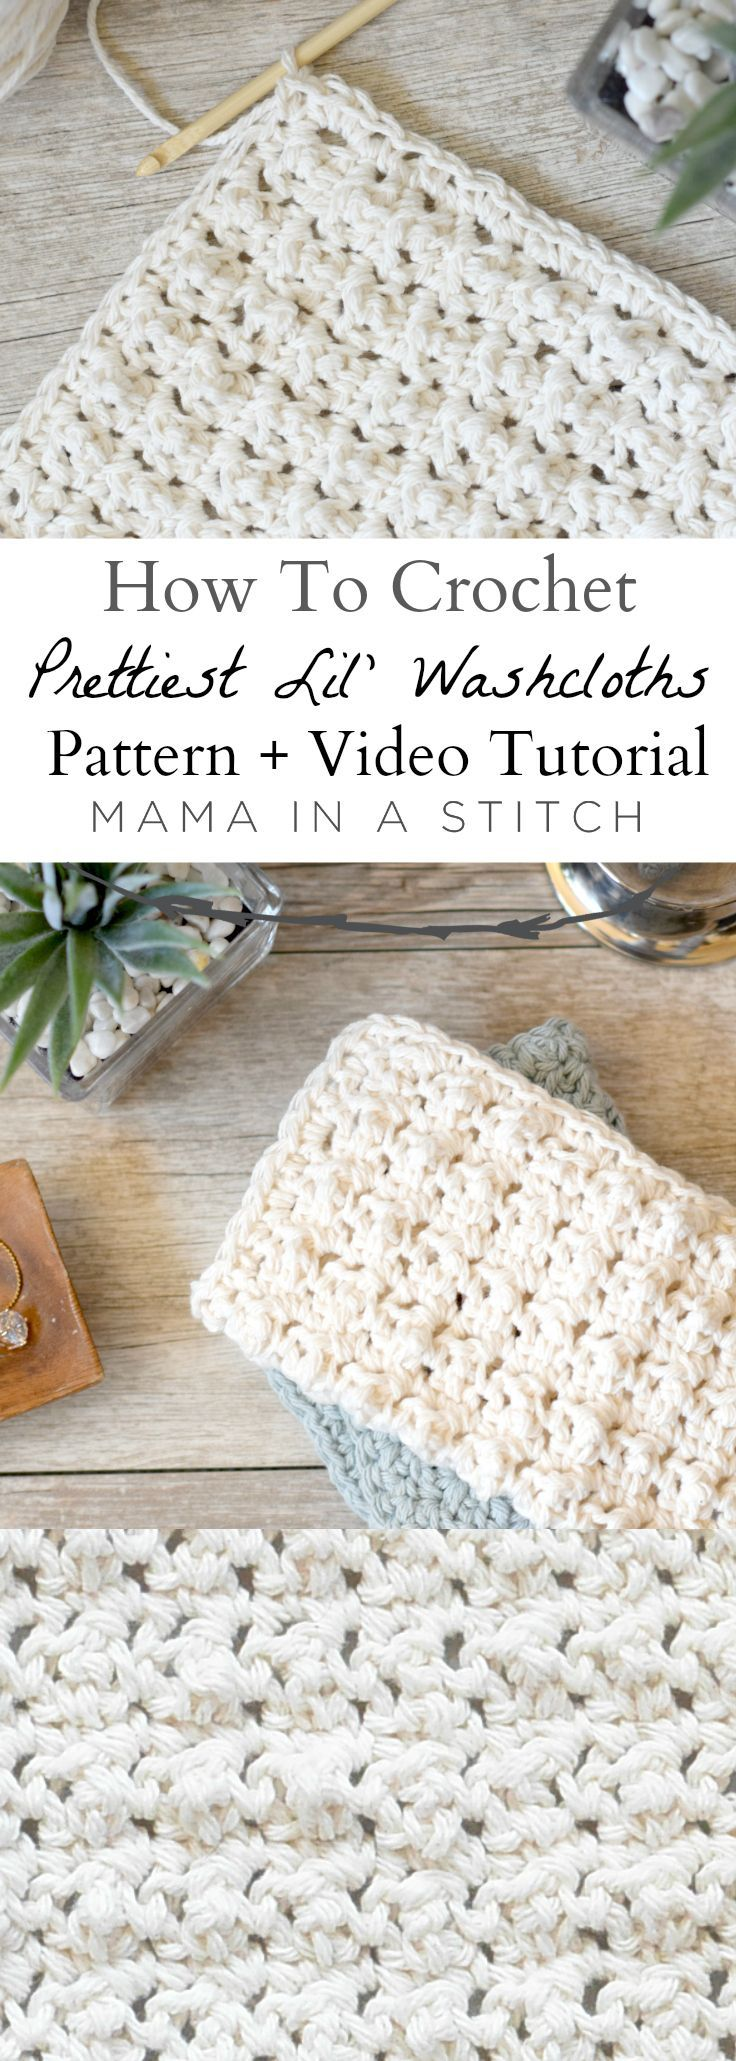 Prettiest Lil' Crocheted Washcloths via /MamaInAStitch/. This free crochet pattern and video tutorial shows you how to make pretty washcloths! They are really easy and have a bubbly texture. #diy #crafts ,  Mary Gottwalt | Mary's Cute & Cozy Crochet